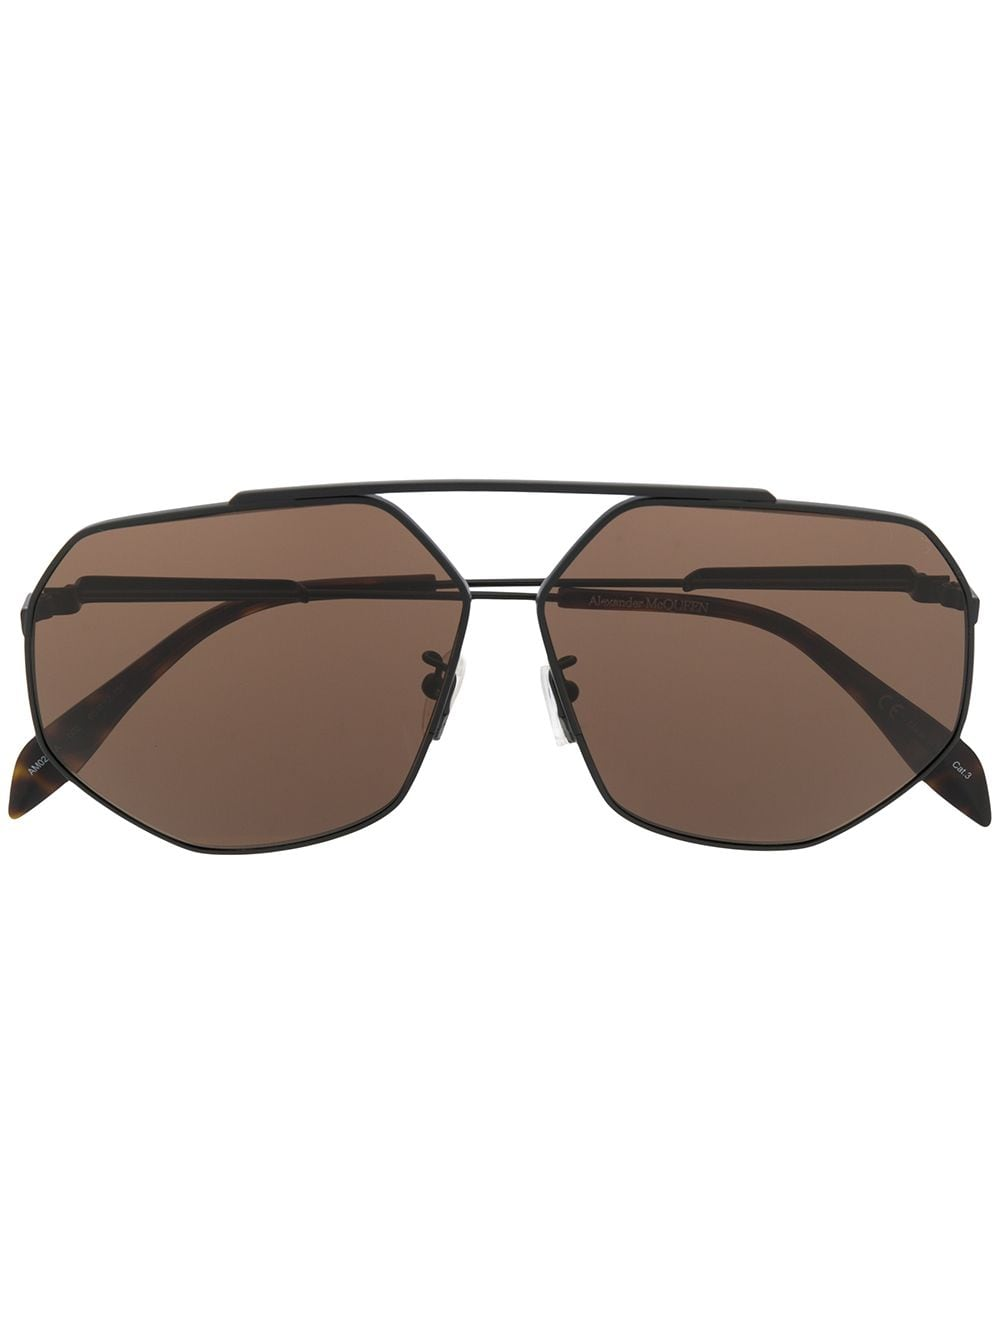 Am0229sa Sun Glasses